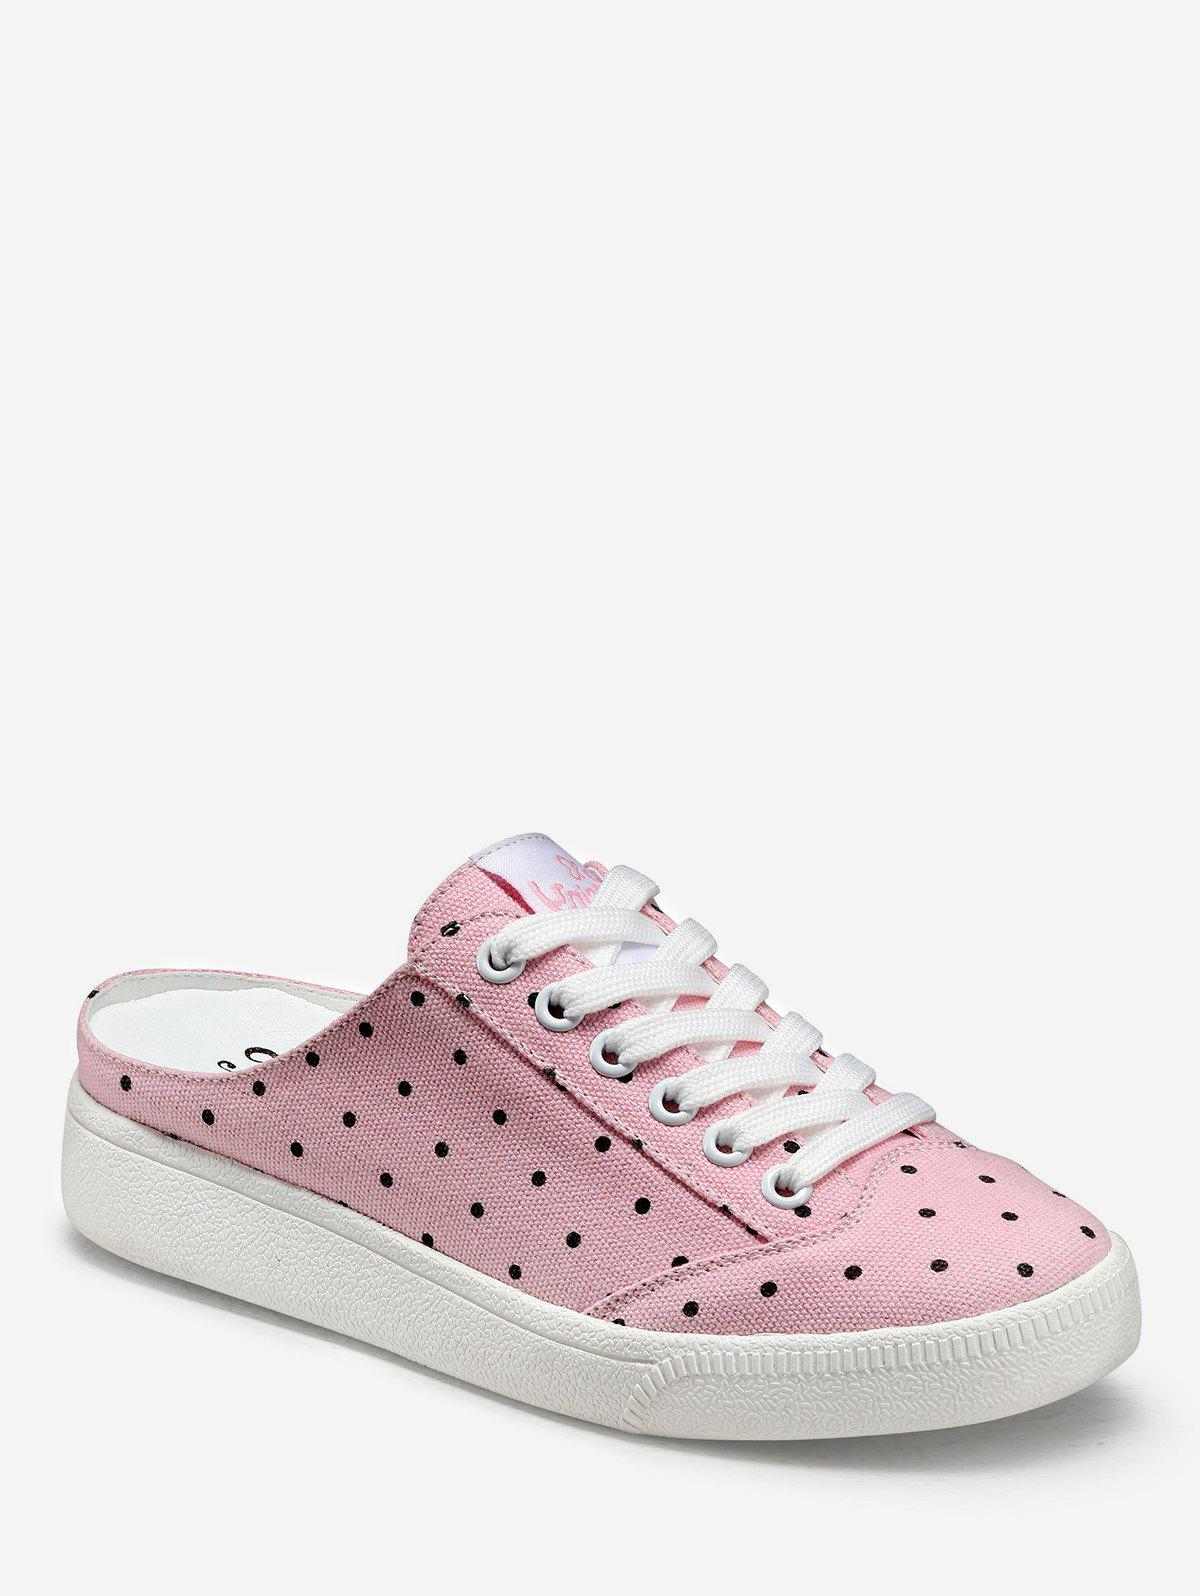 Buy Polka Dot Lacing Canvas Slingback Sneakers